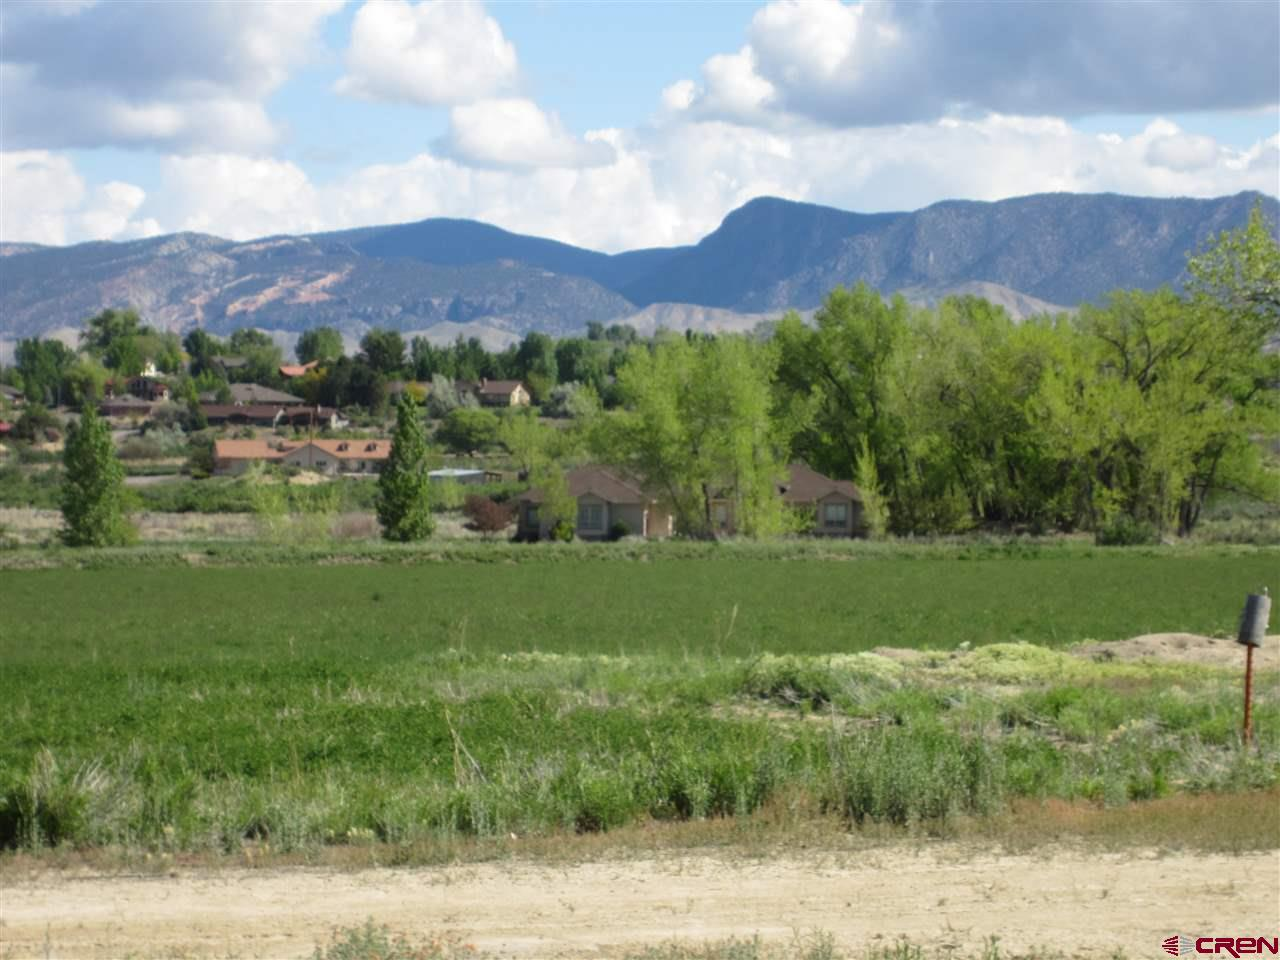 16666 6725, Montrose, Colorado 81401, ,Lots And Land,For Sale,16666 6725,719127